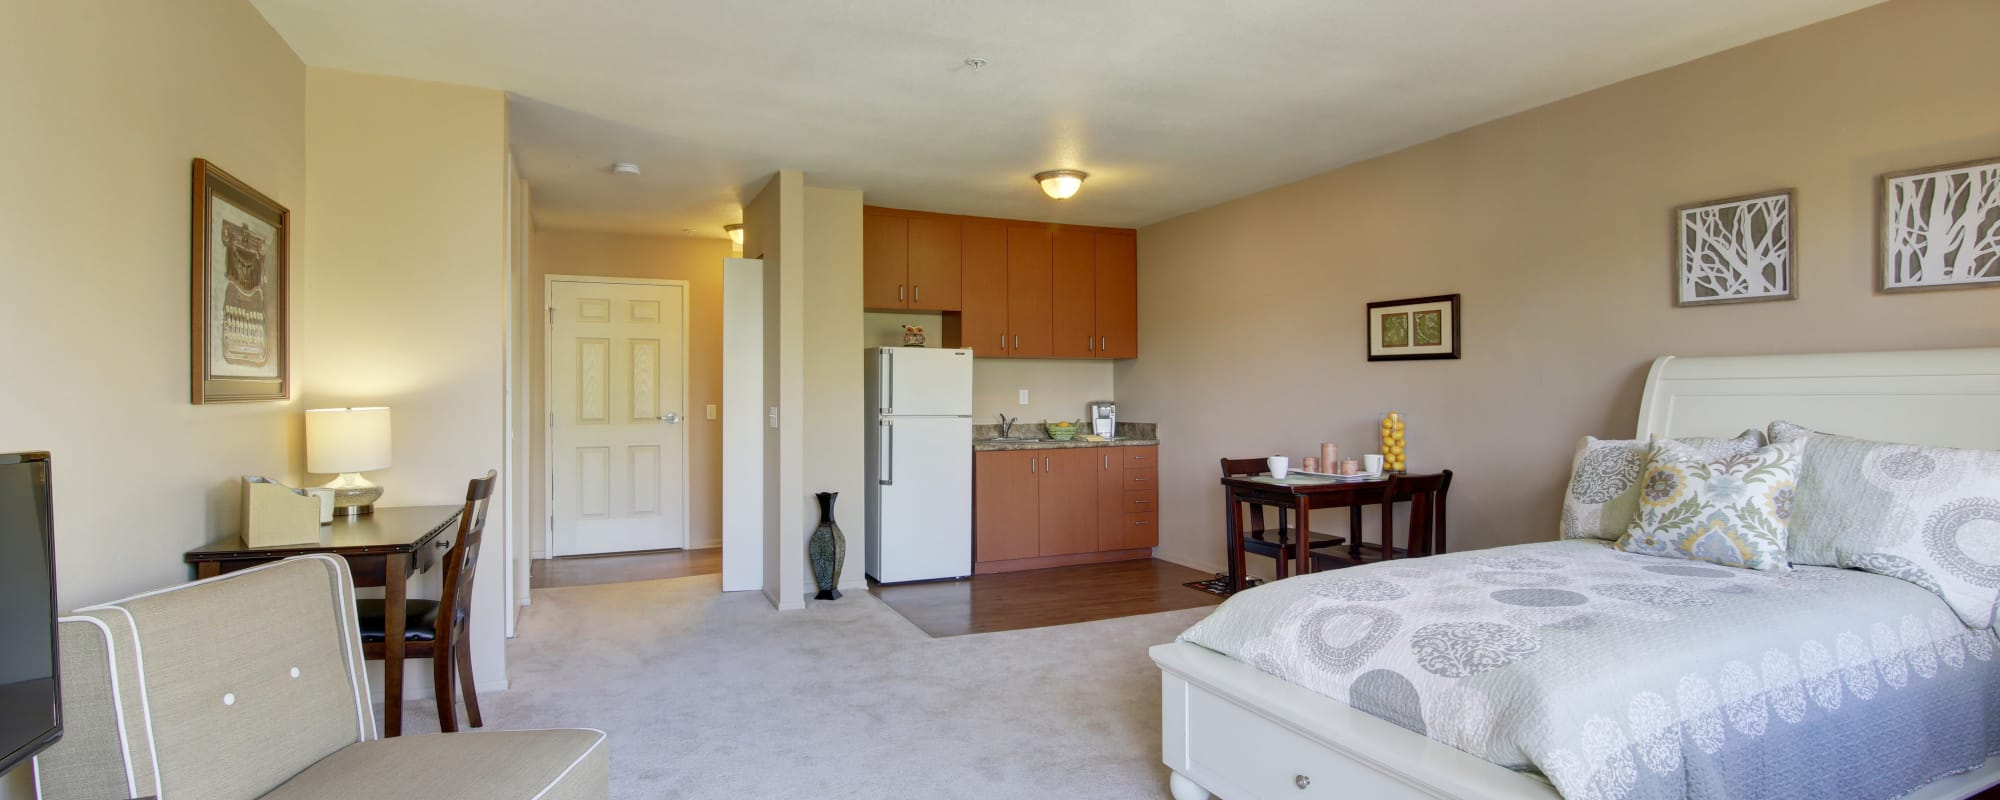 Bedroom at Citrus Place in Riverside, California